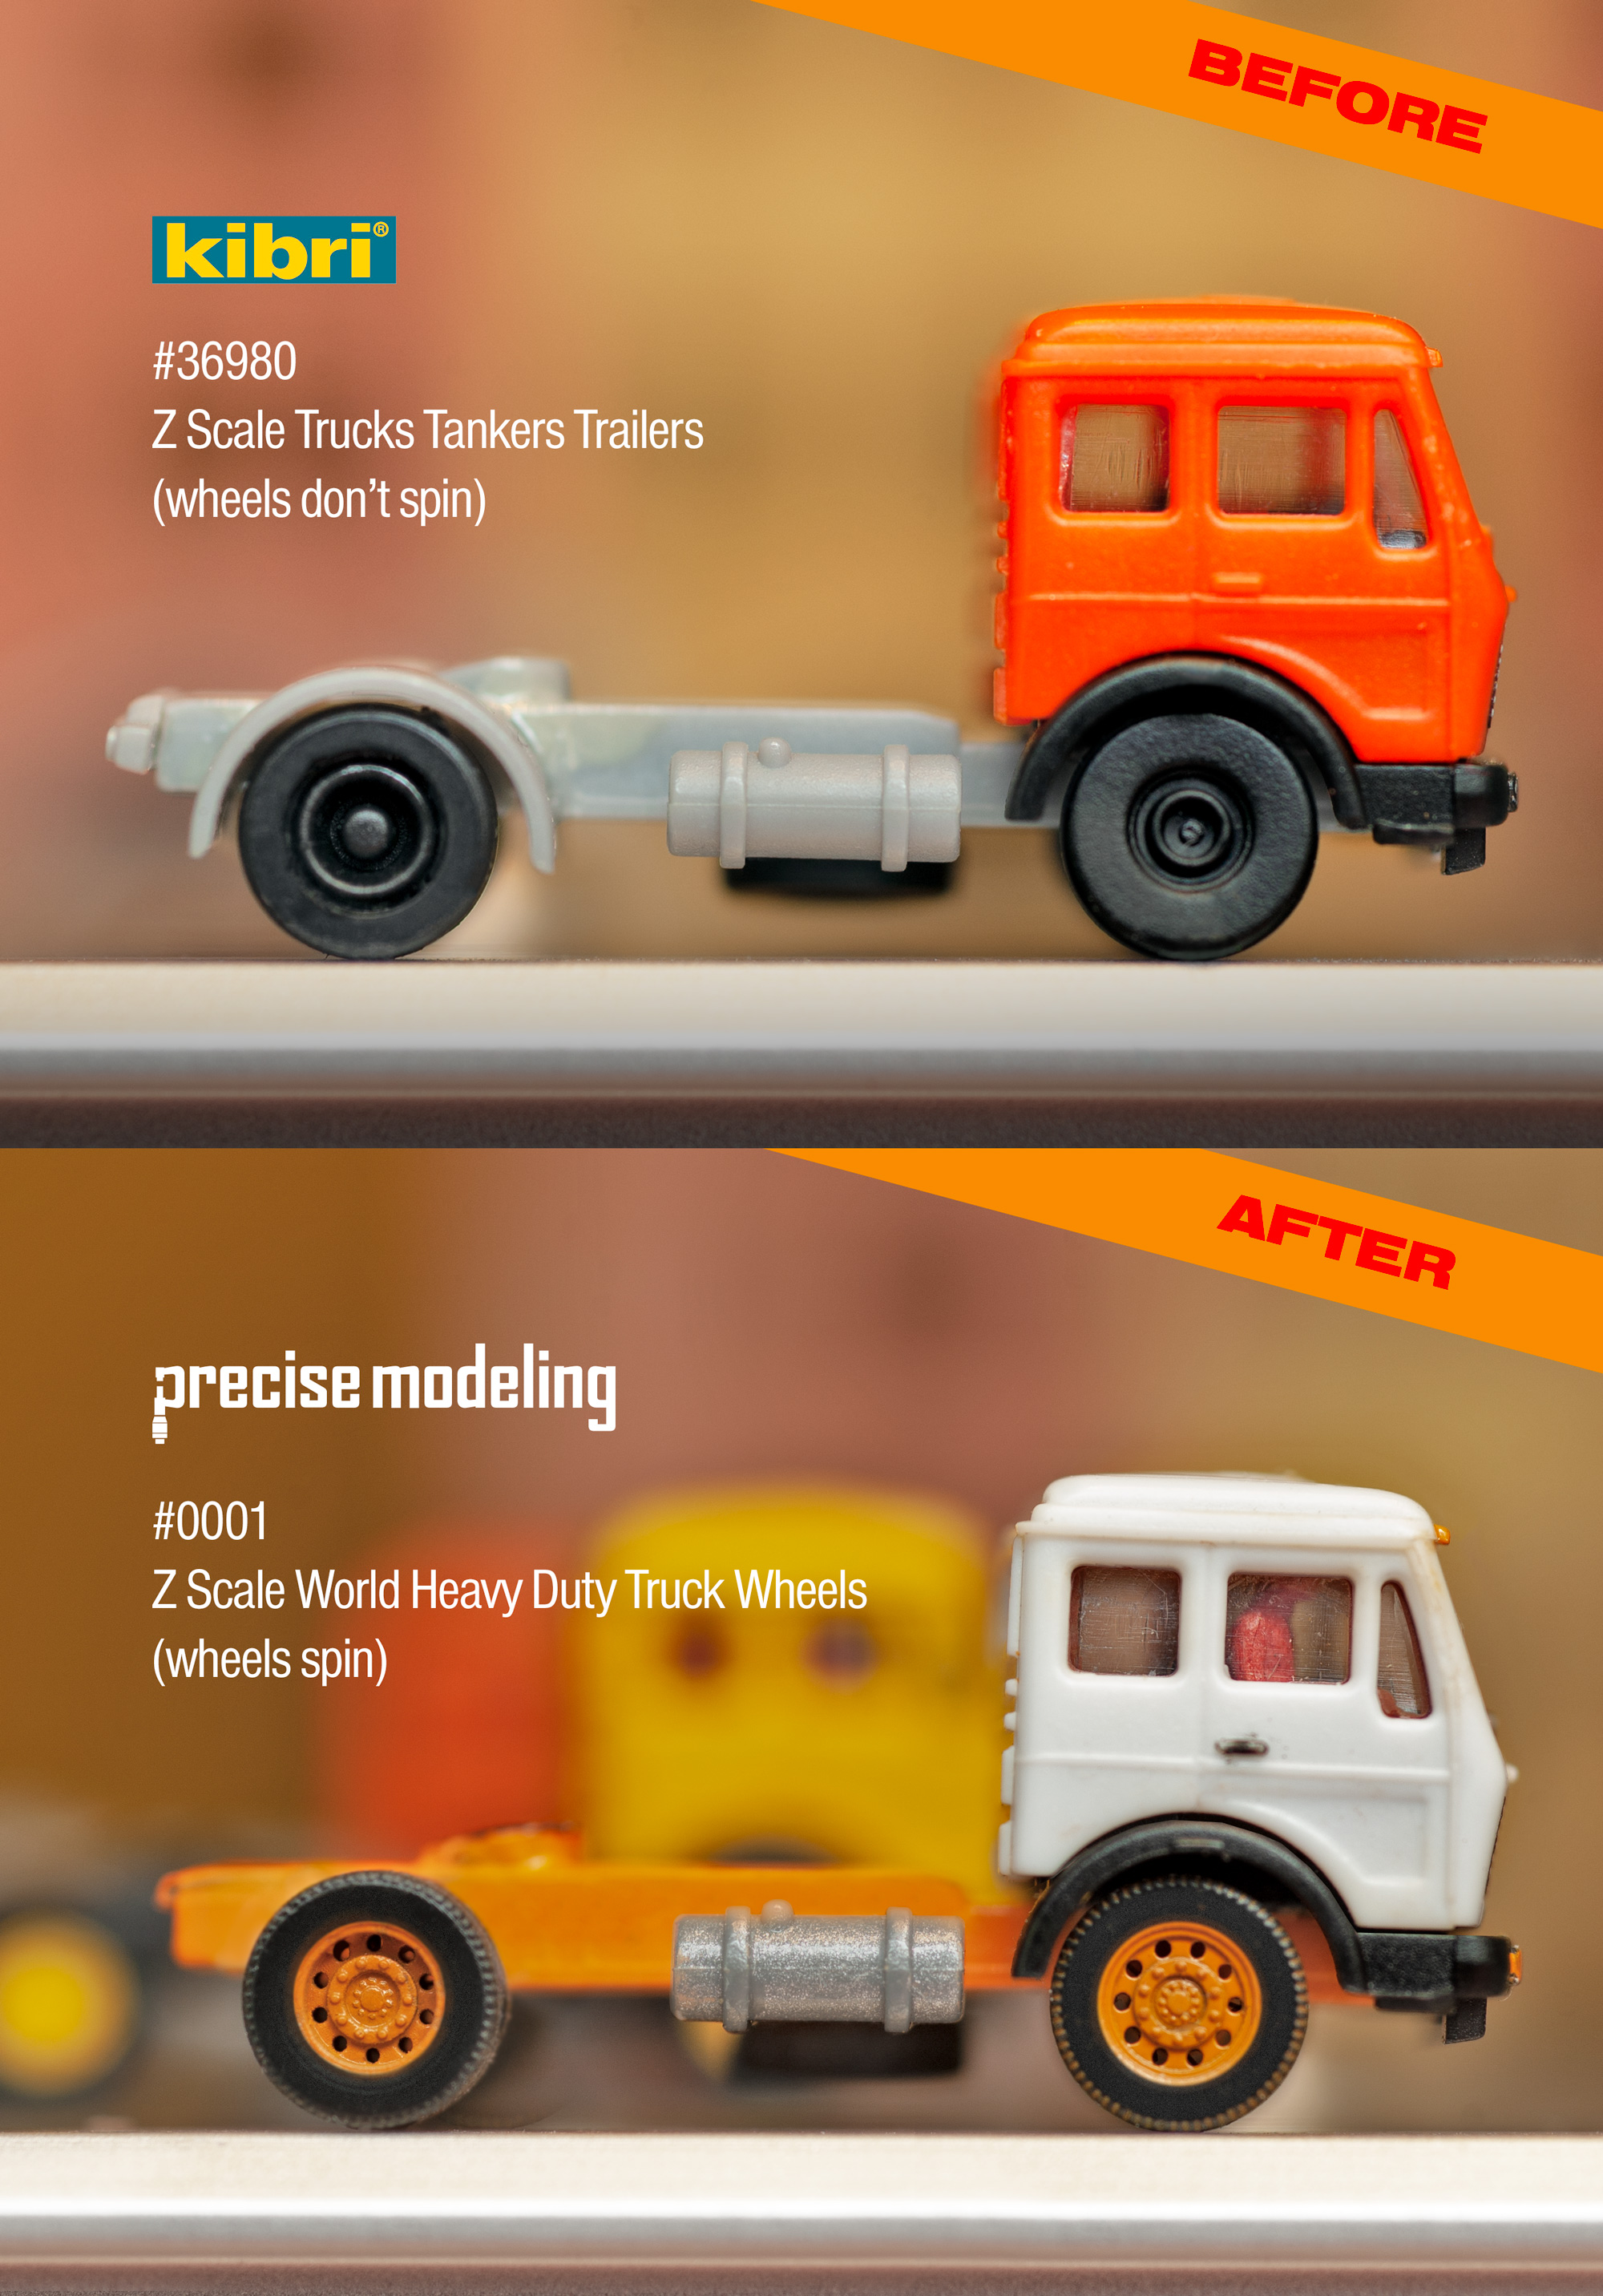 3D printed Z scale wheels; comparison between Kibri, and the higher quality of Precise Modeling's product.